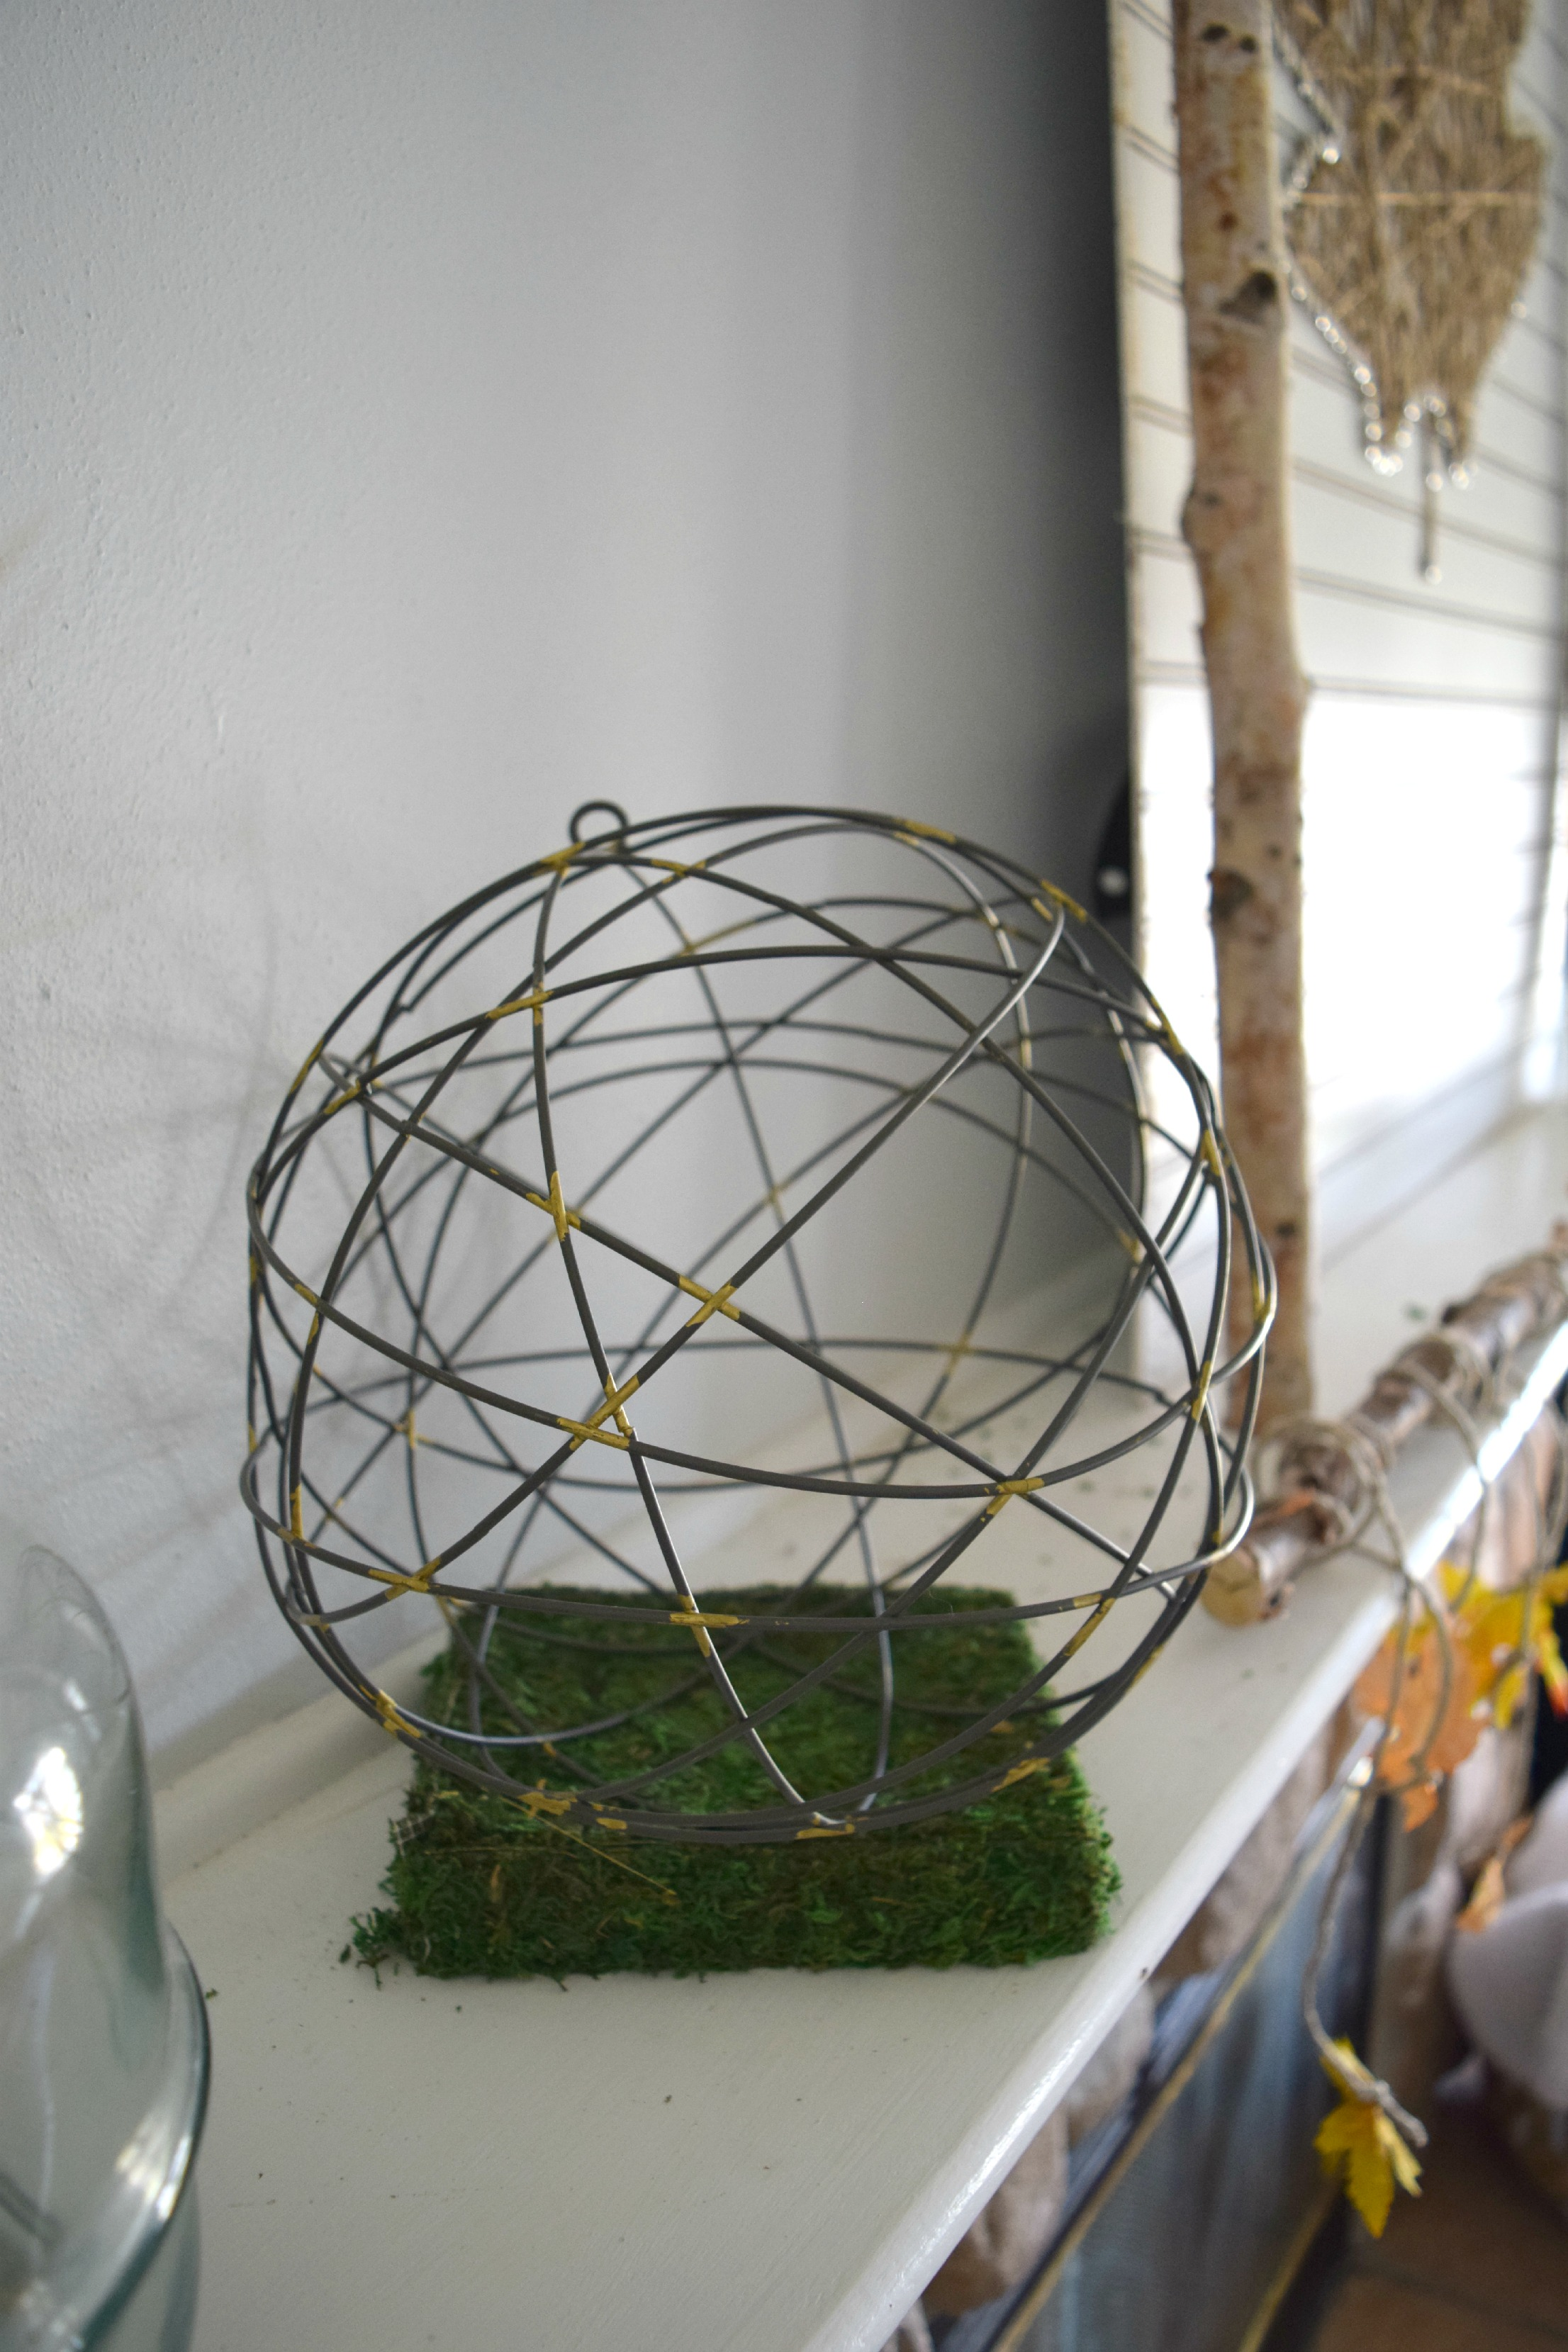 metal orb in home decor